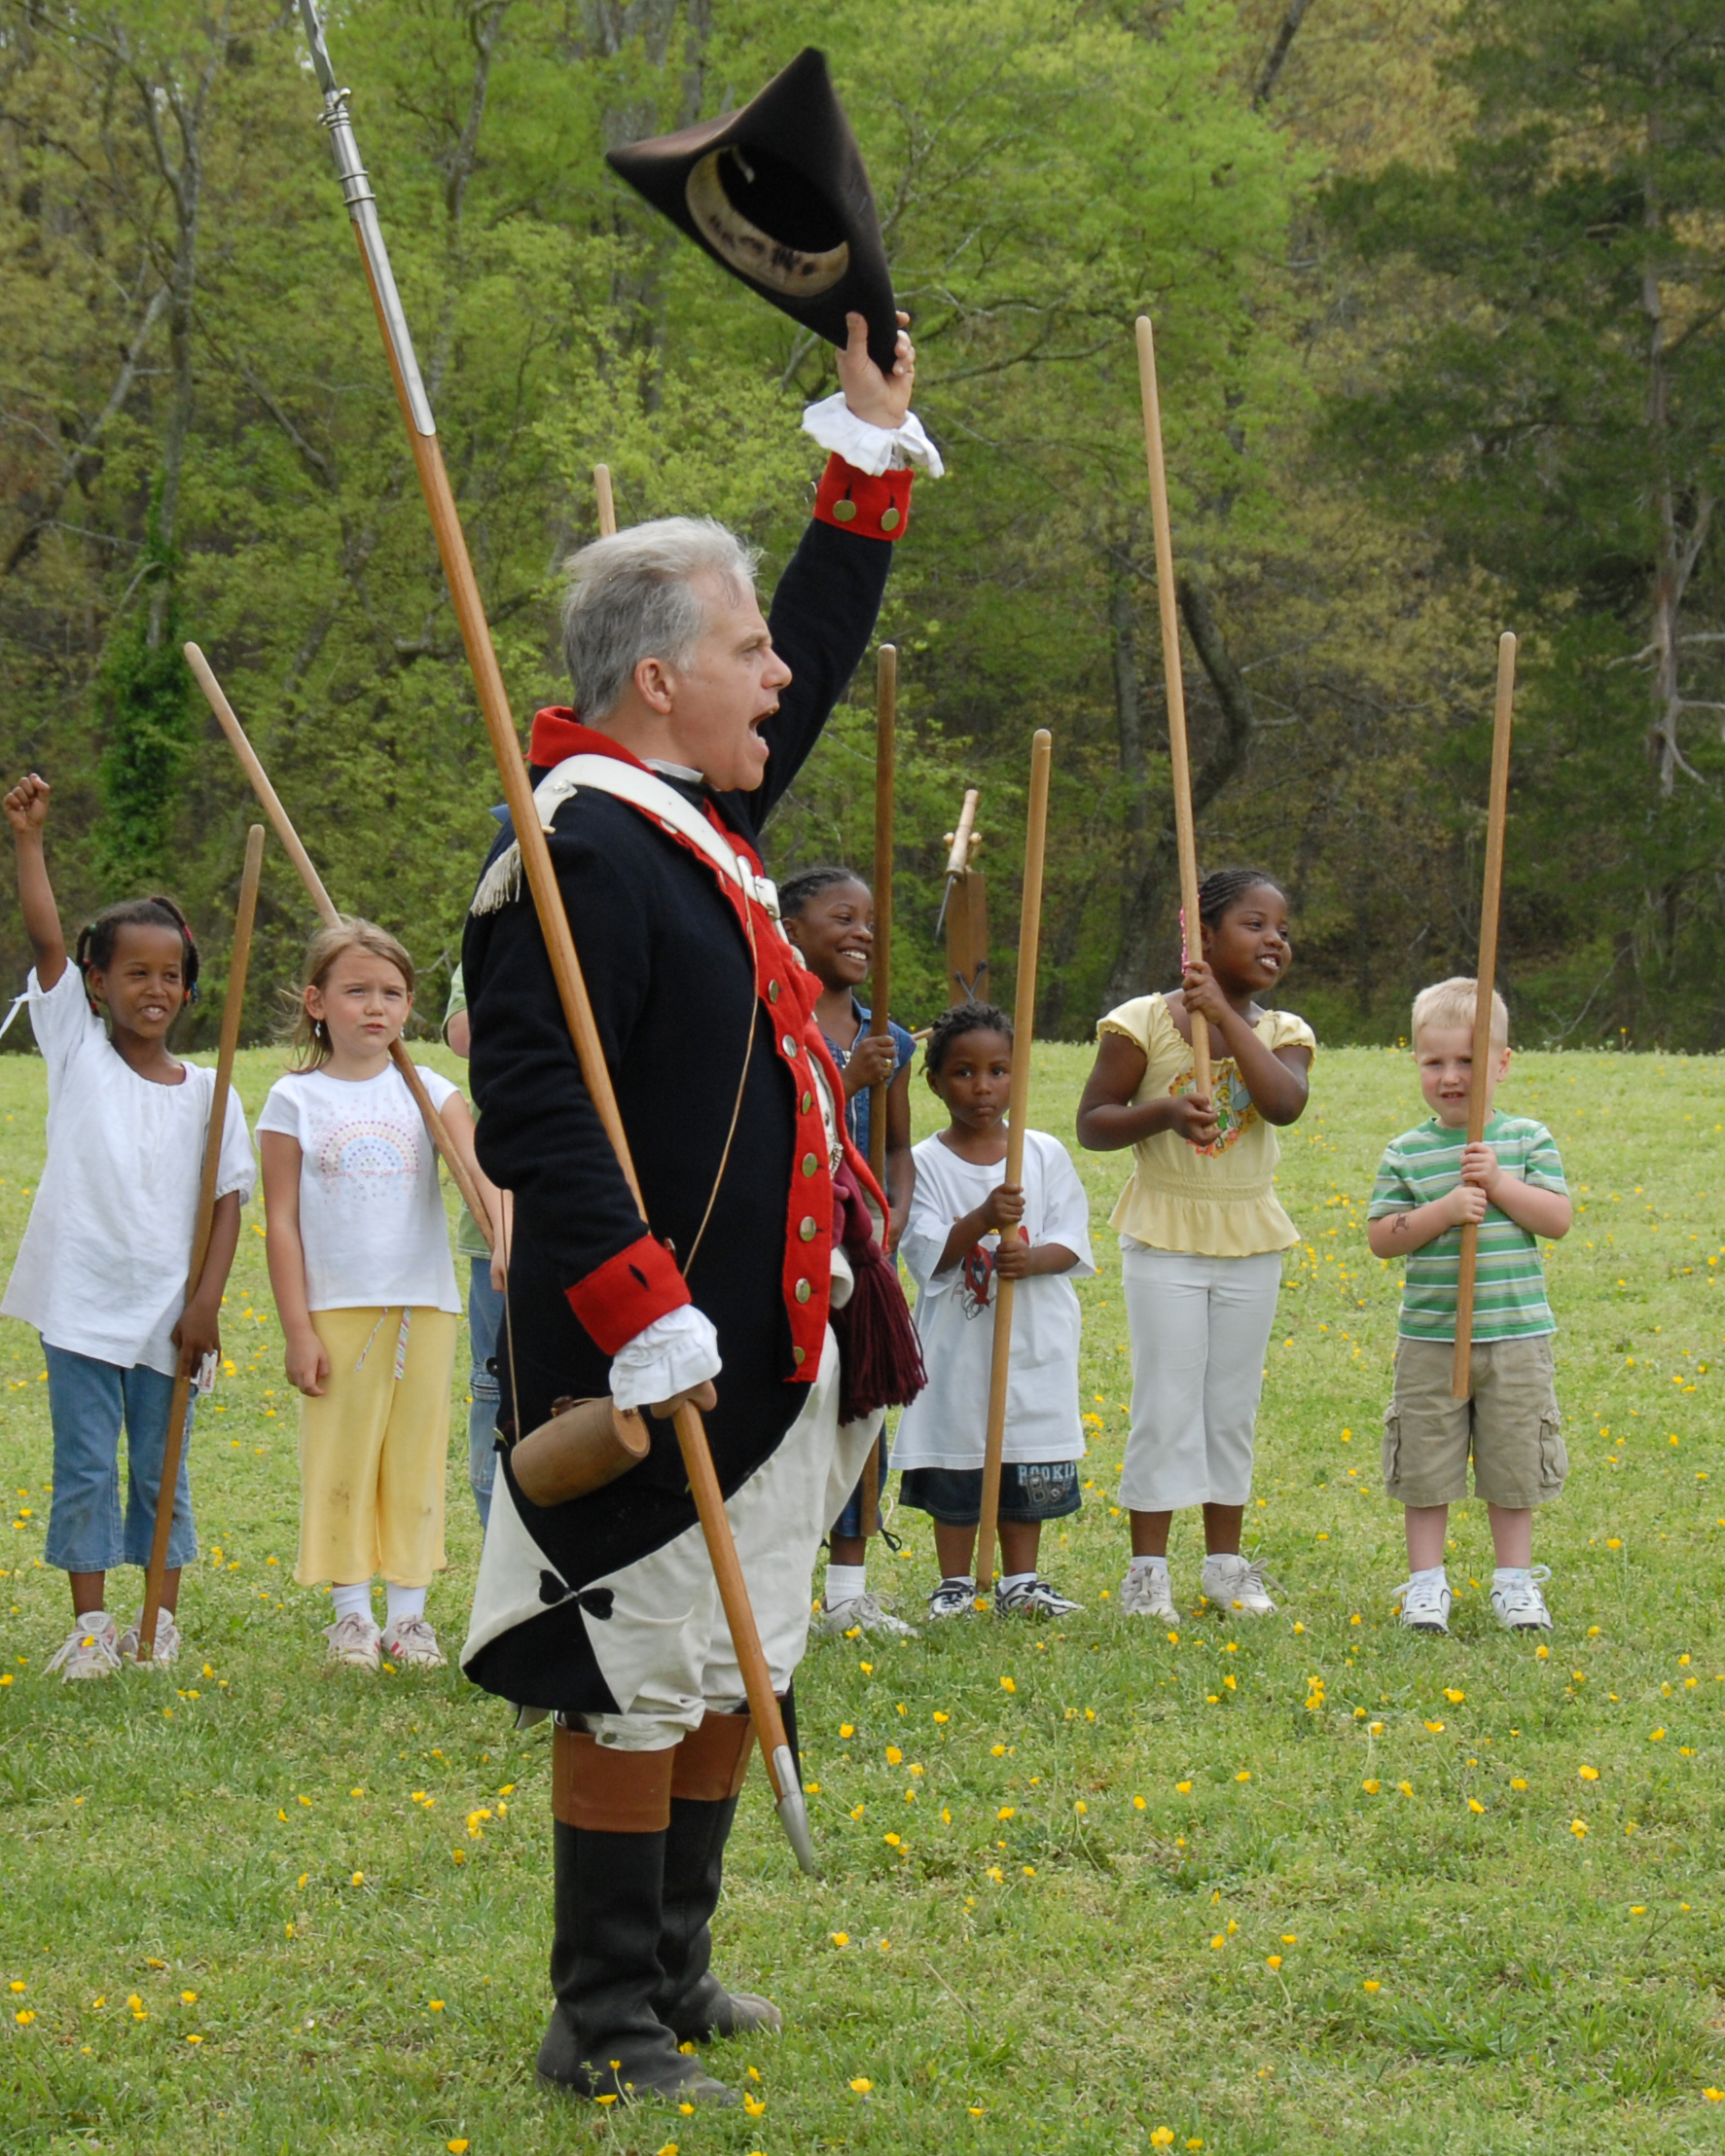 July 4th Celebrations at N.C. Historic Sites and Museums